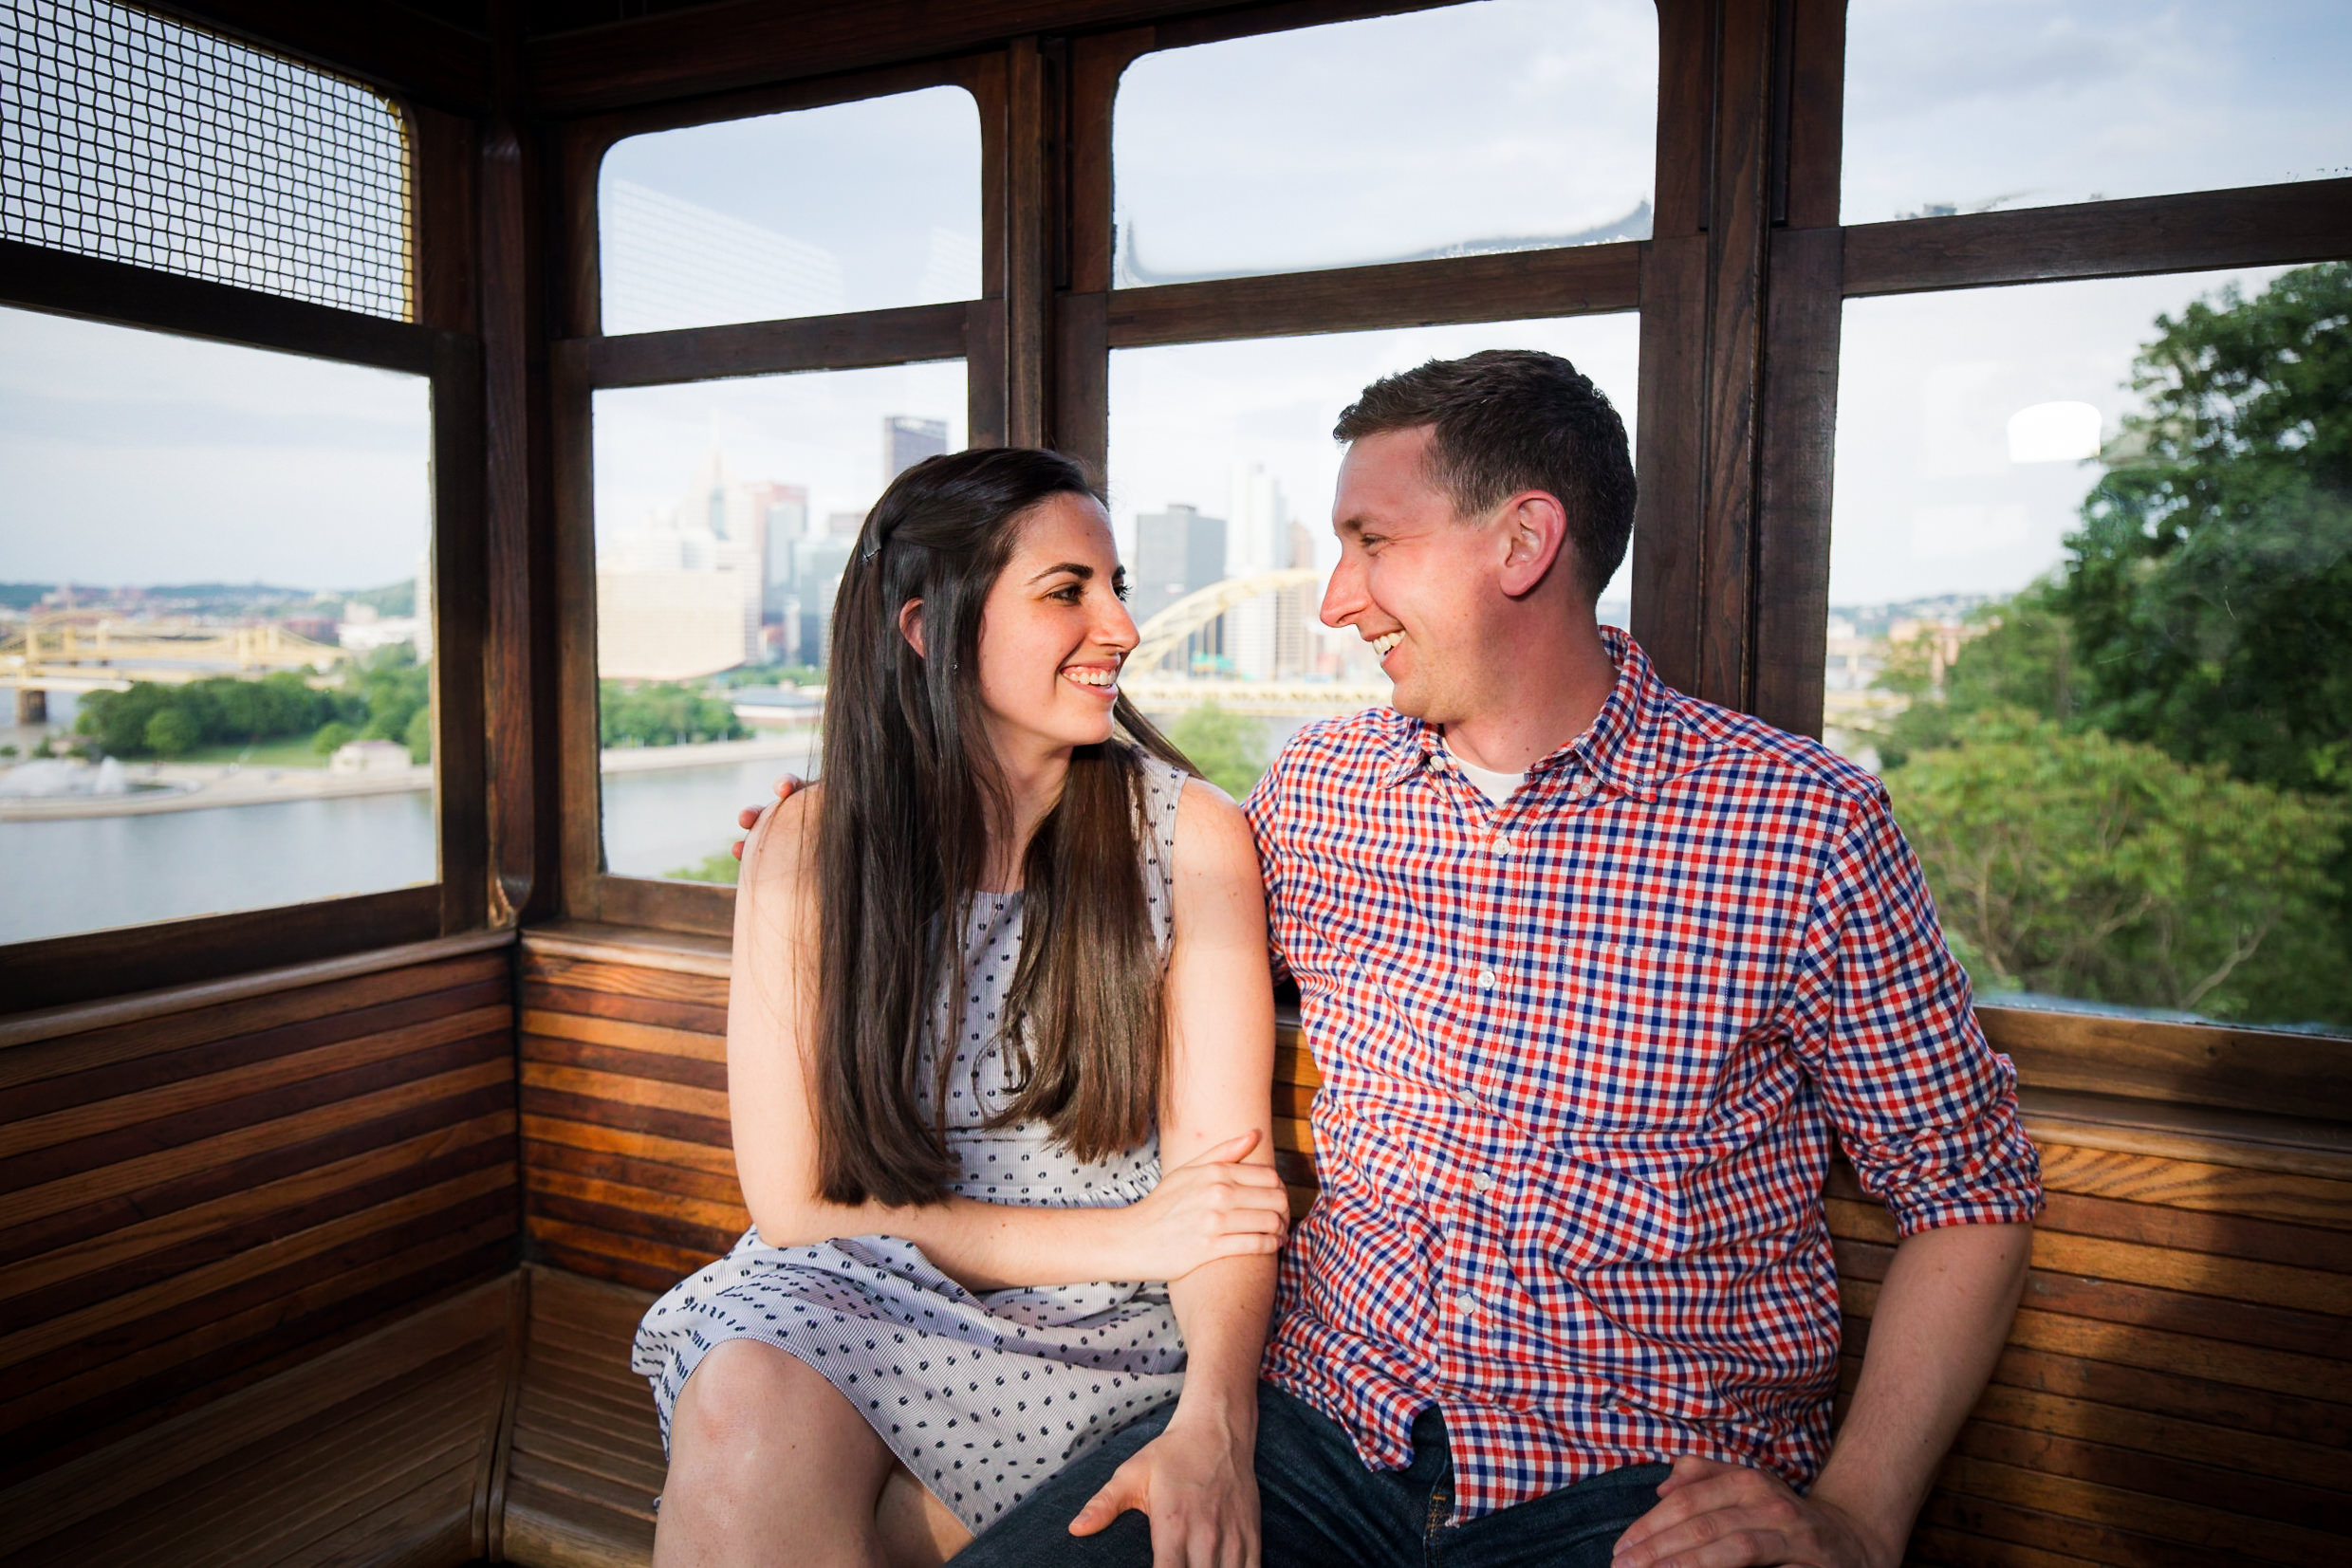 Station Square Duquesne Incline Wedding Engagement Picture locations-4.jpg